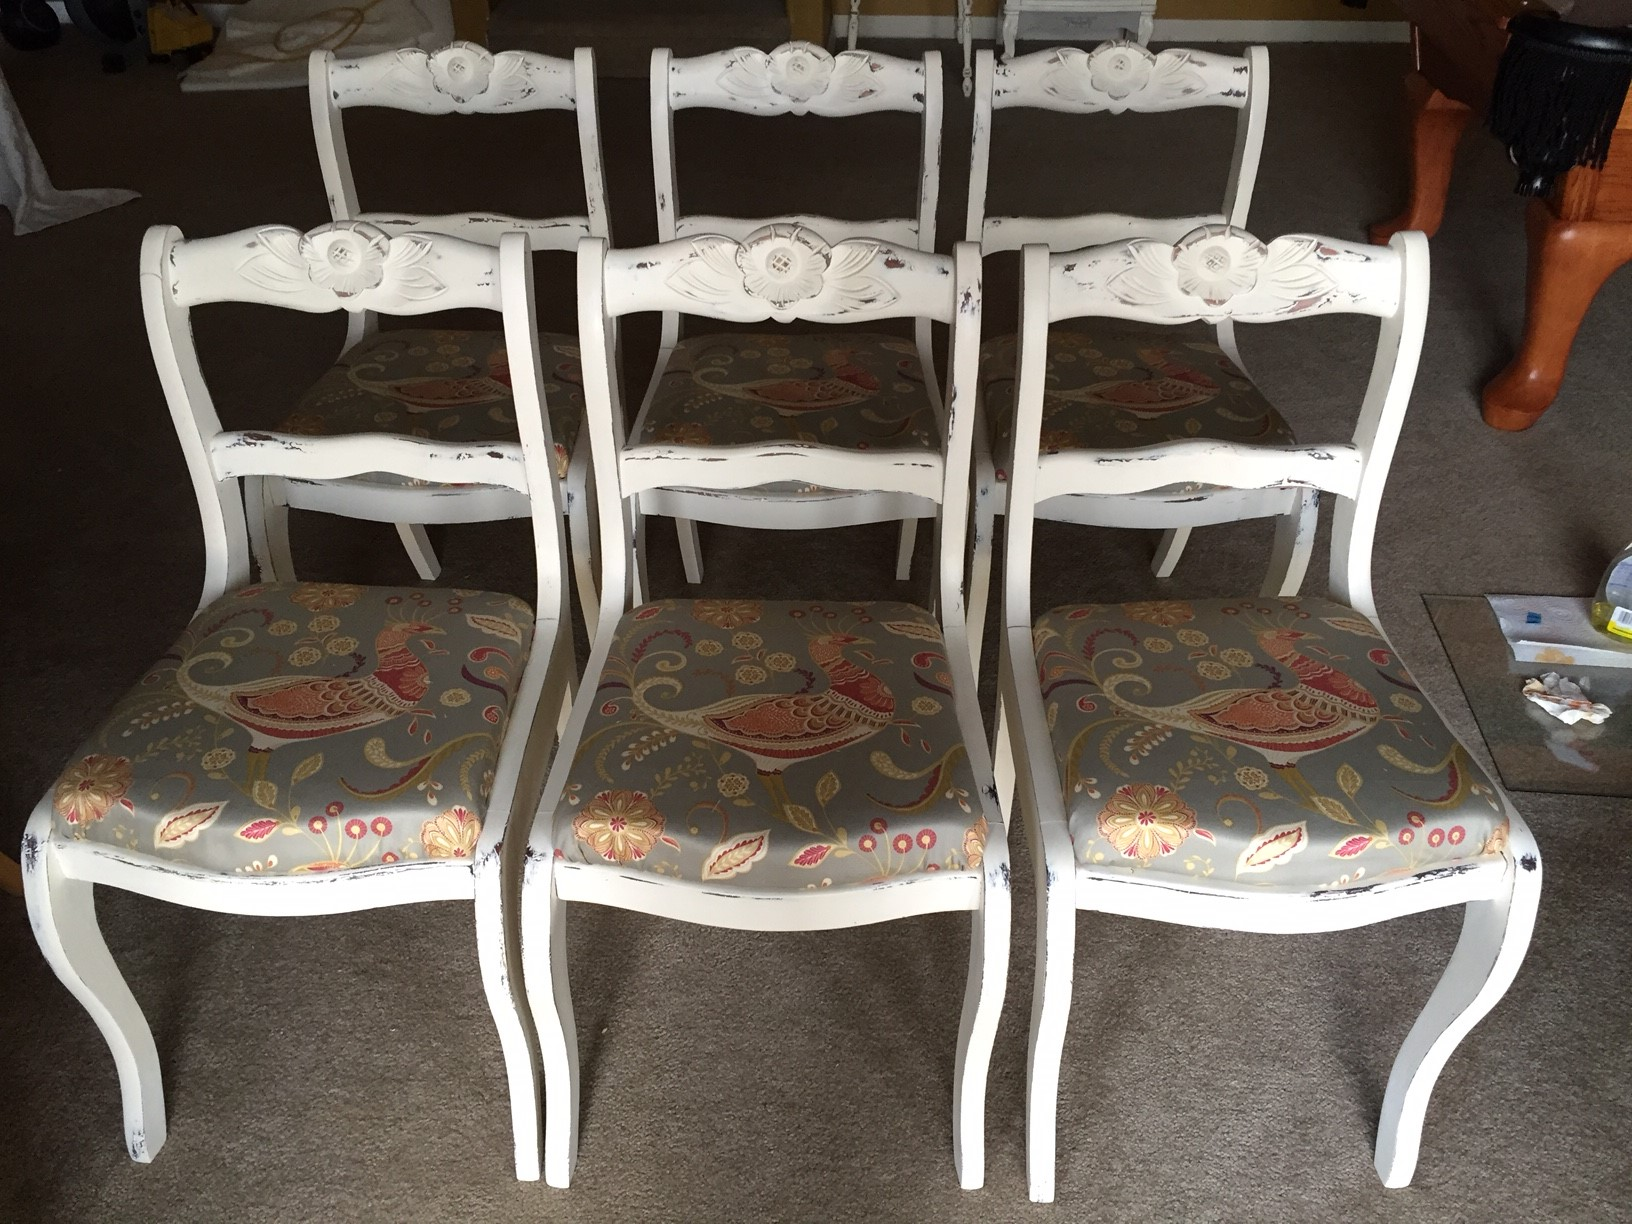 Duncan phyfe rose back chairs - Painted Distressed Reupholstered Country Chic Side Chairs